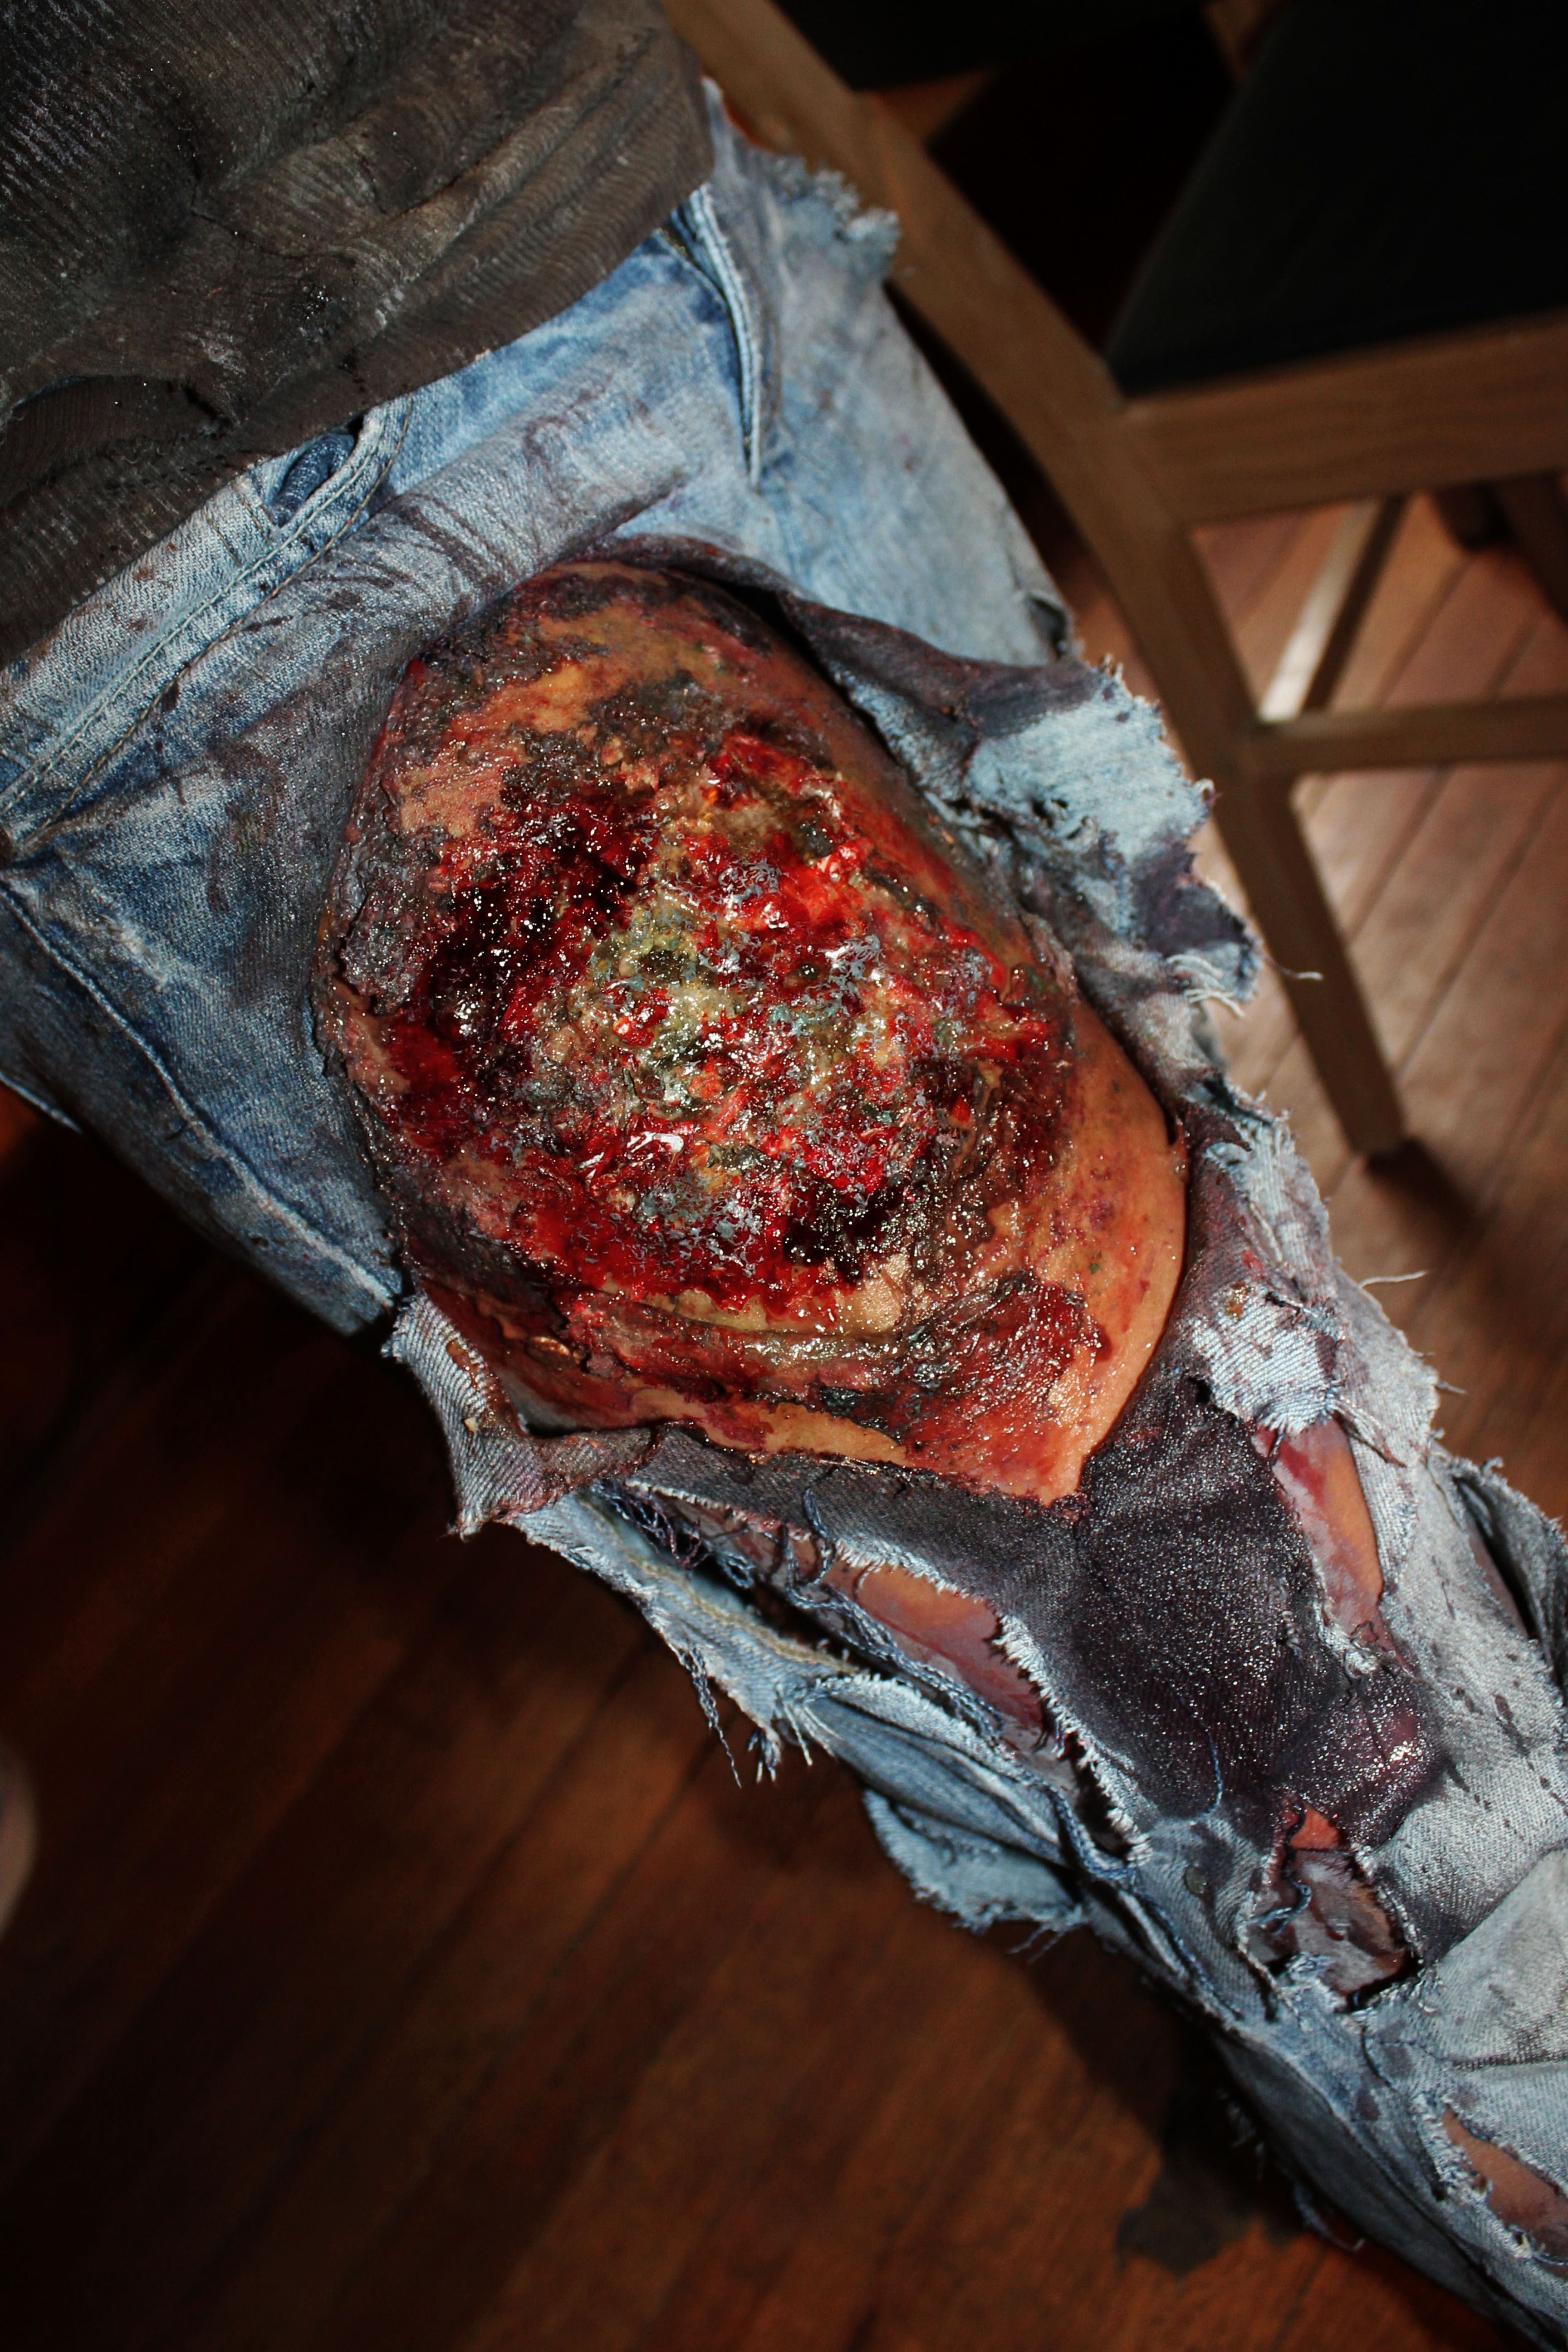 Rotten Disgusting Chopped Up Zombie Leg Wound For